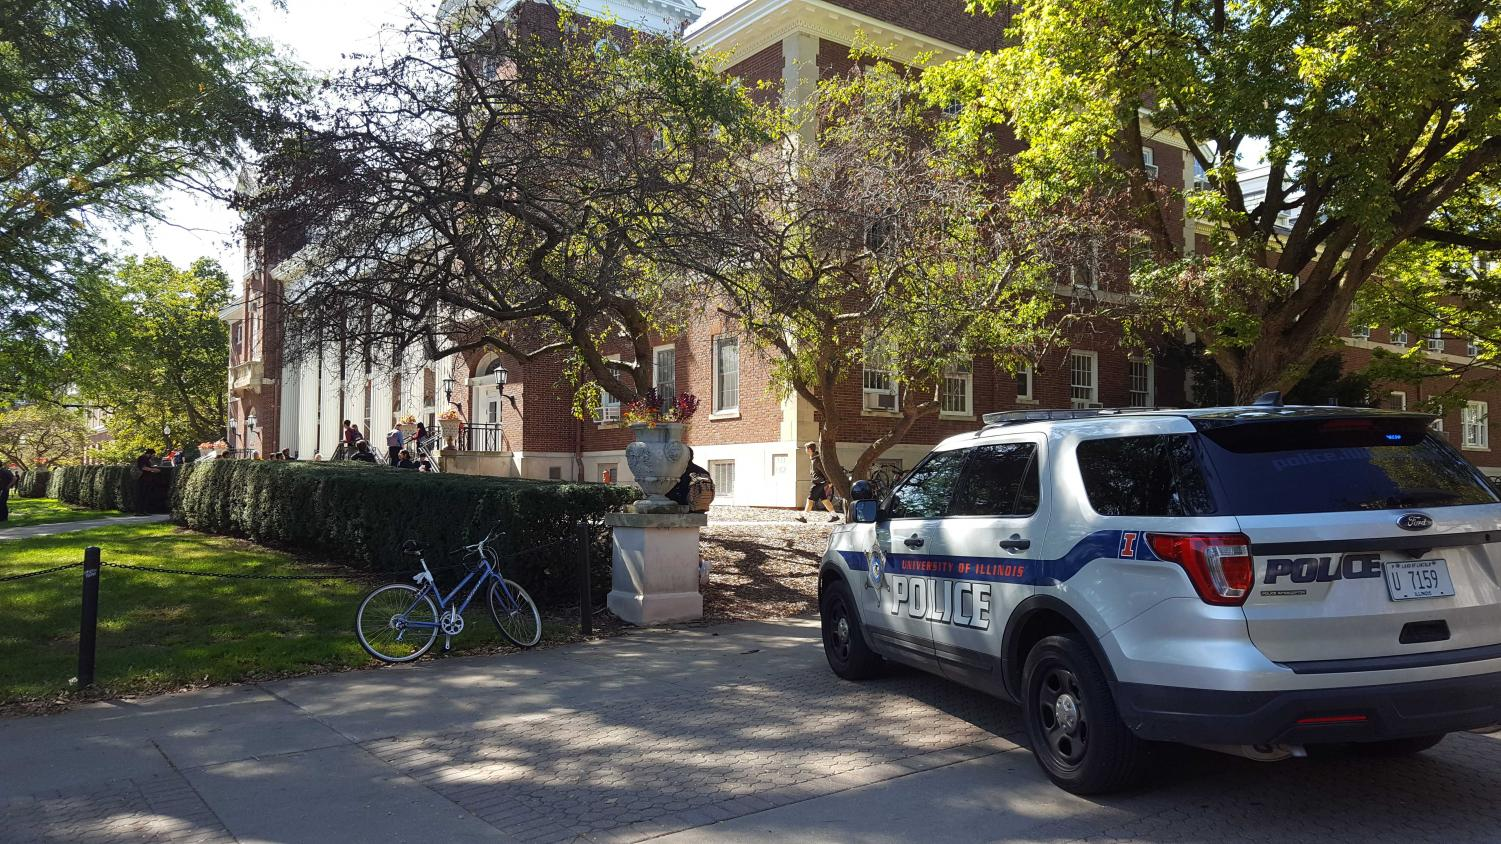 A University police car is parked in front of the English Building on Monday. A gas leak was reported at the building around 11:30 a.m. Monday.